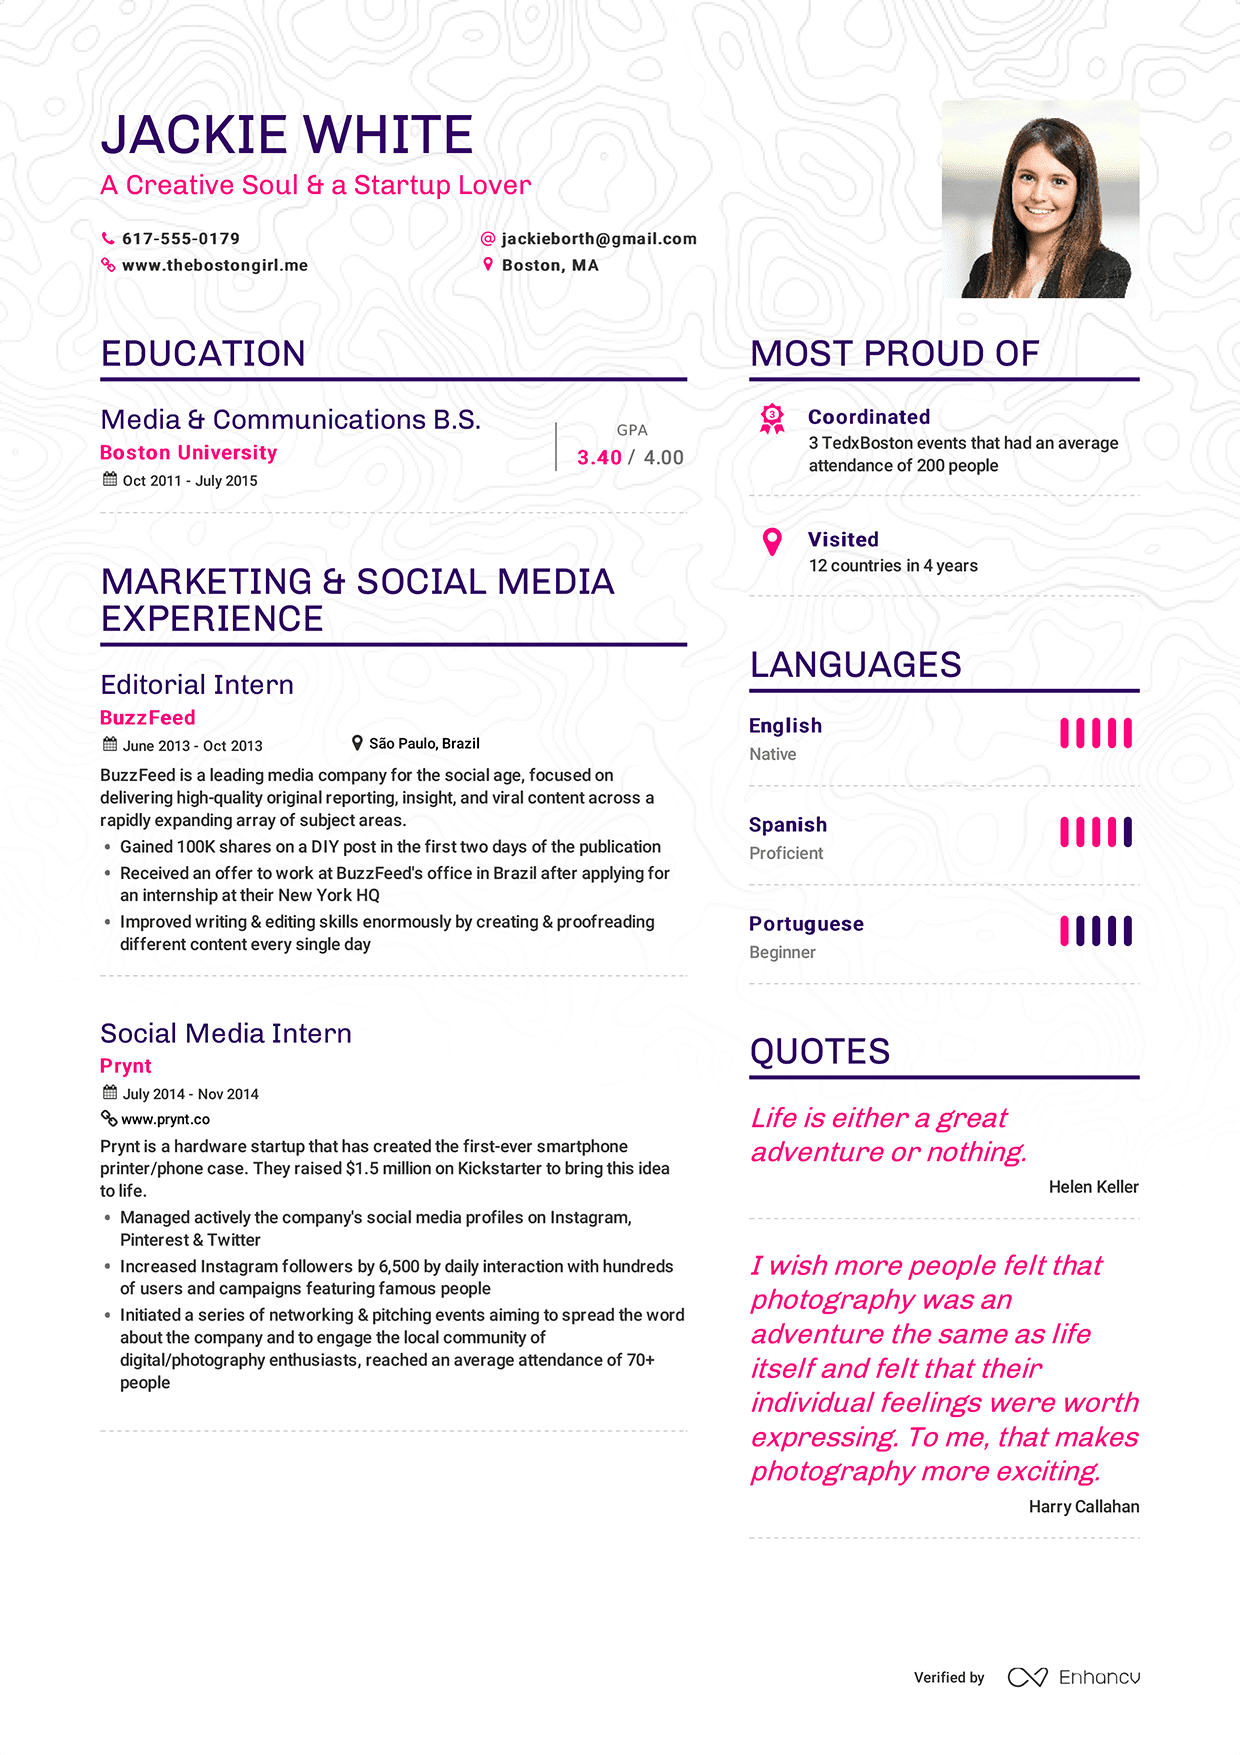 resume jackie white 1